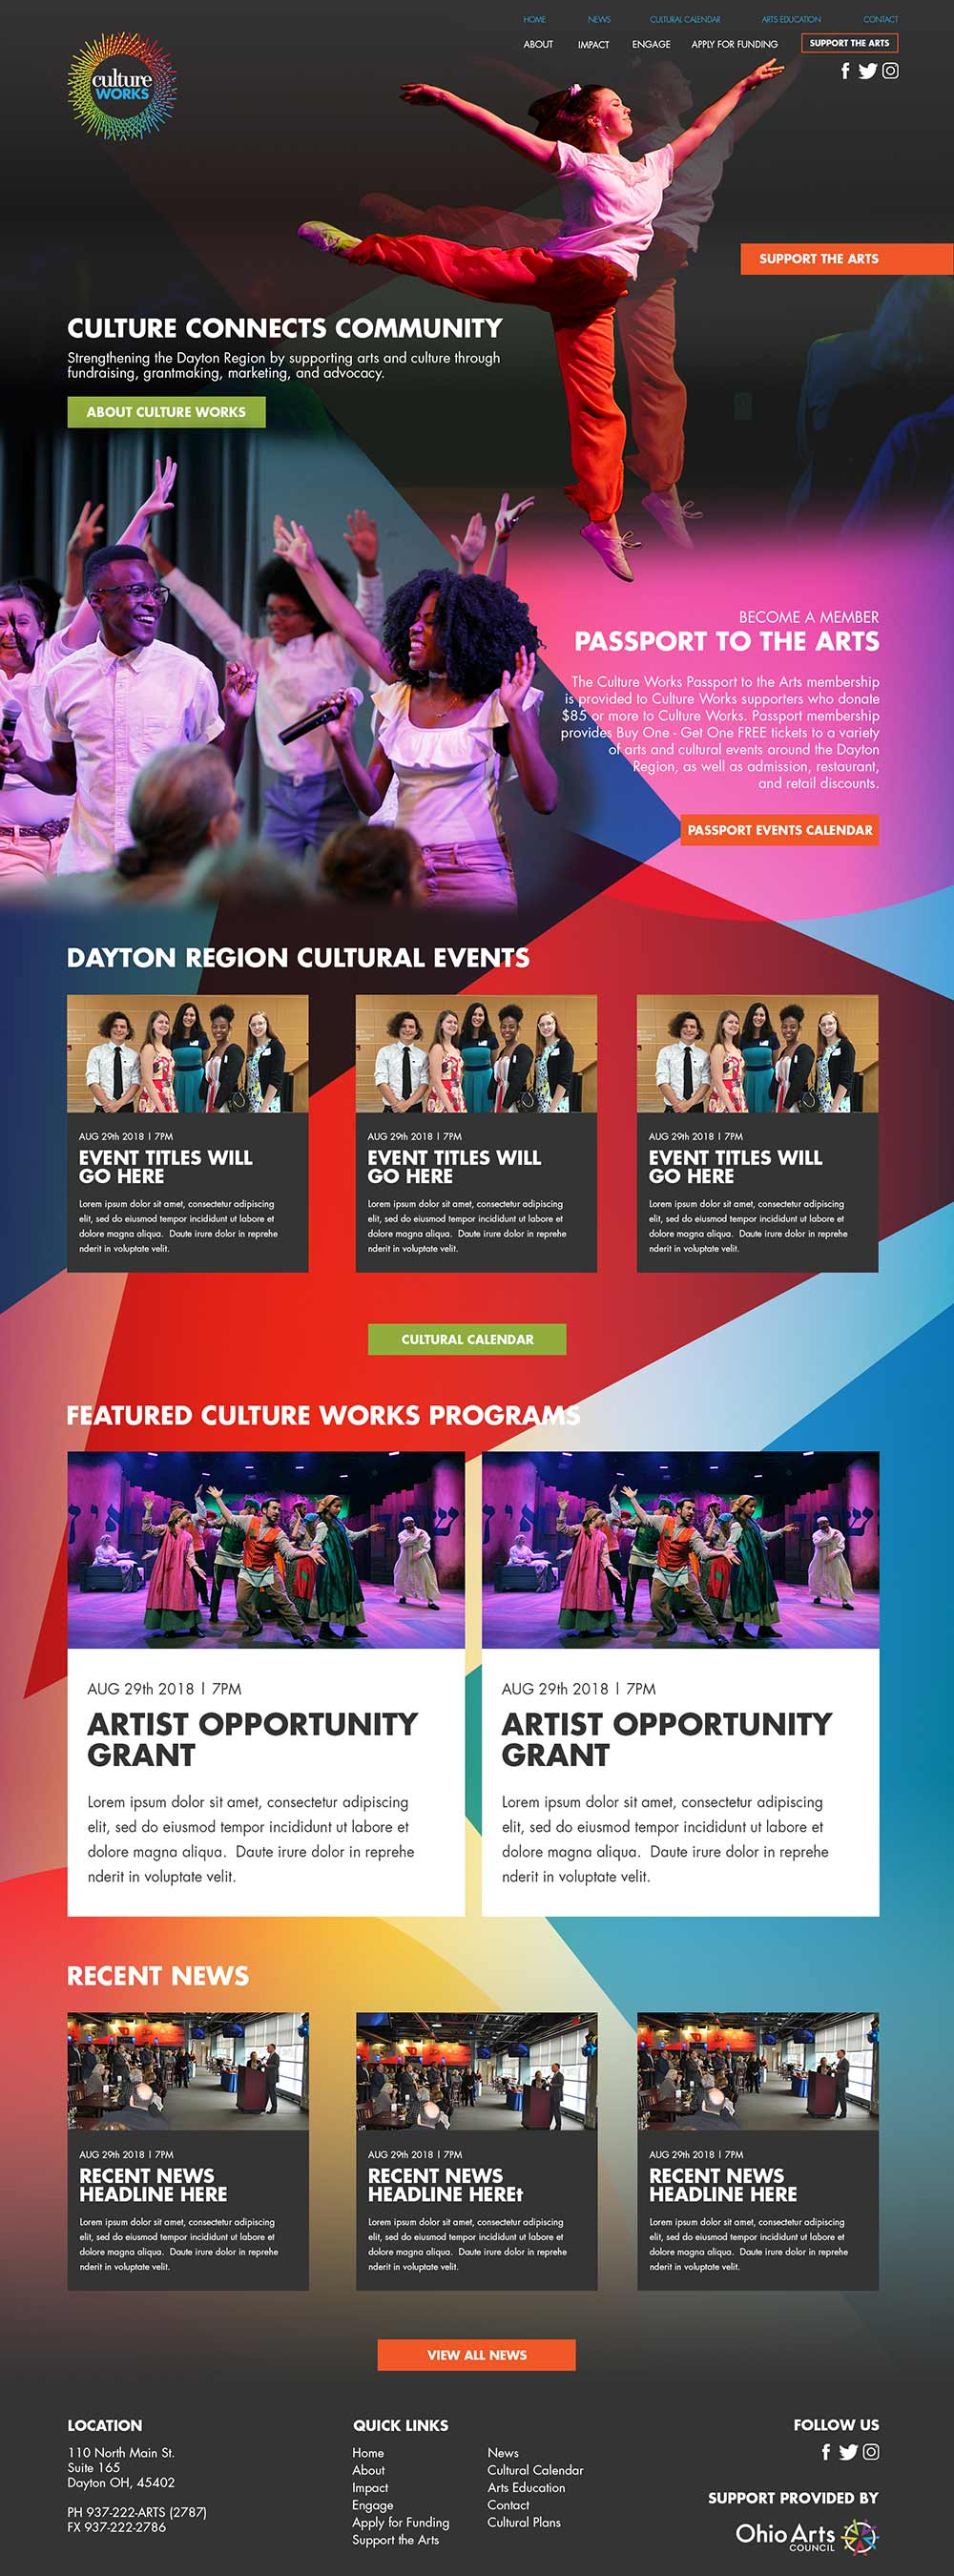 culture works website